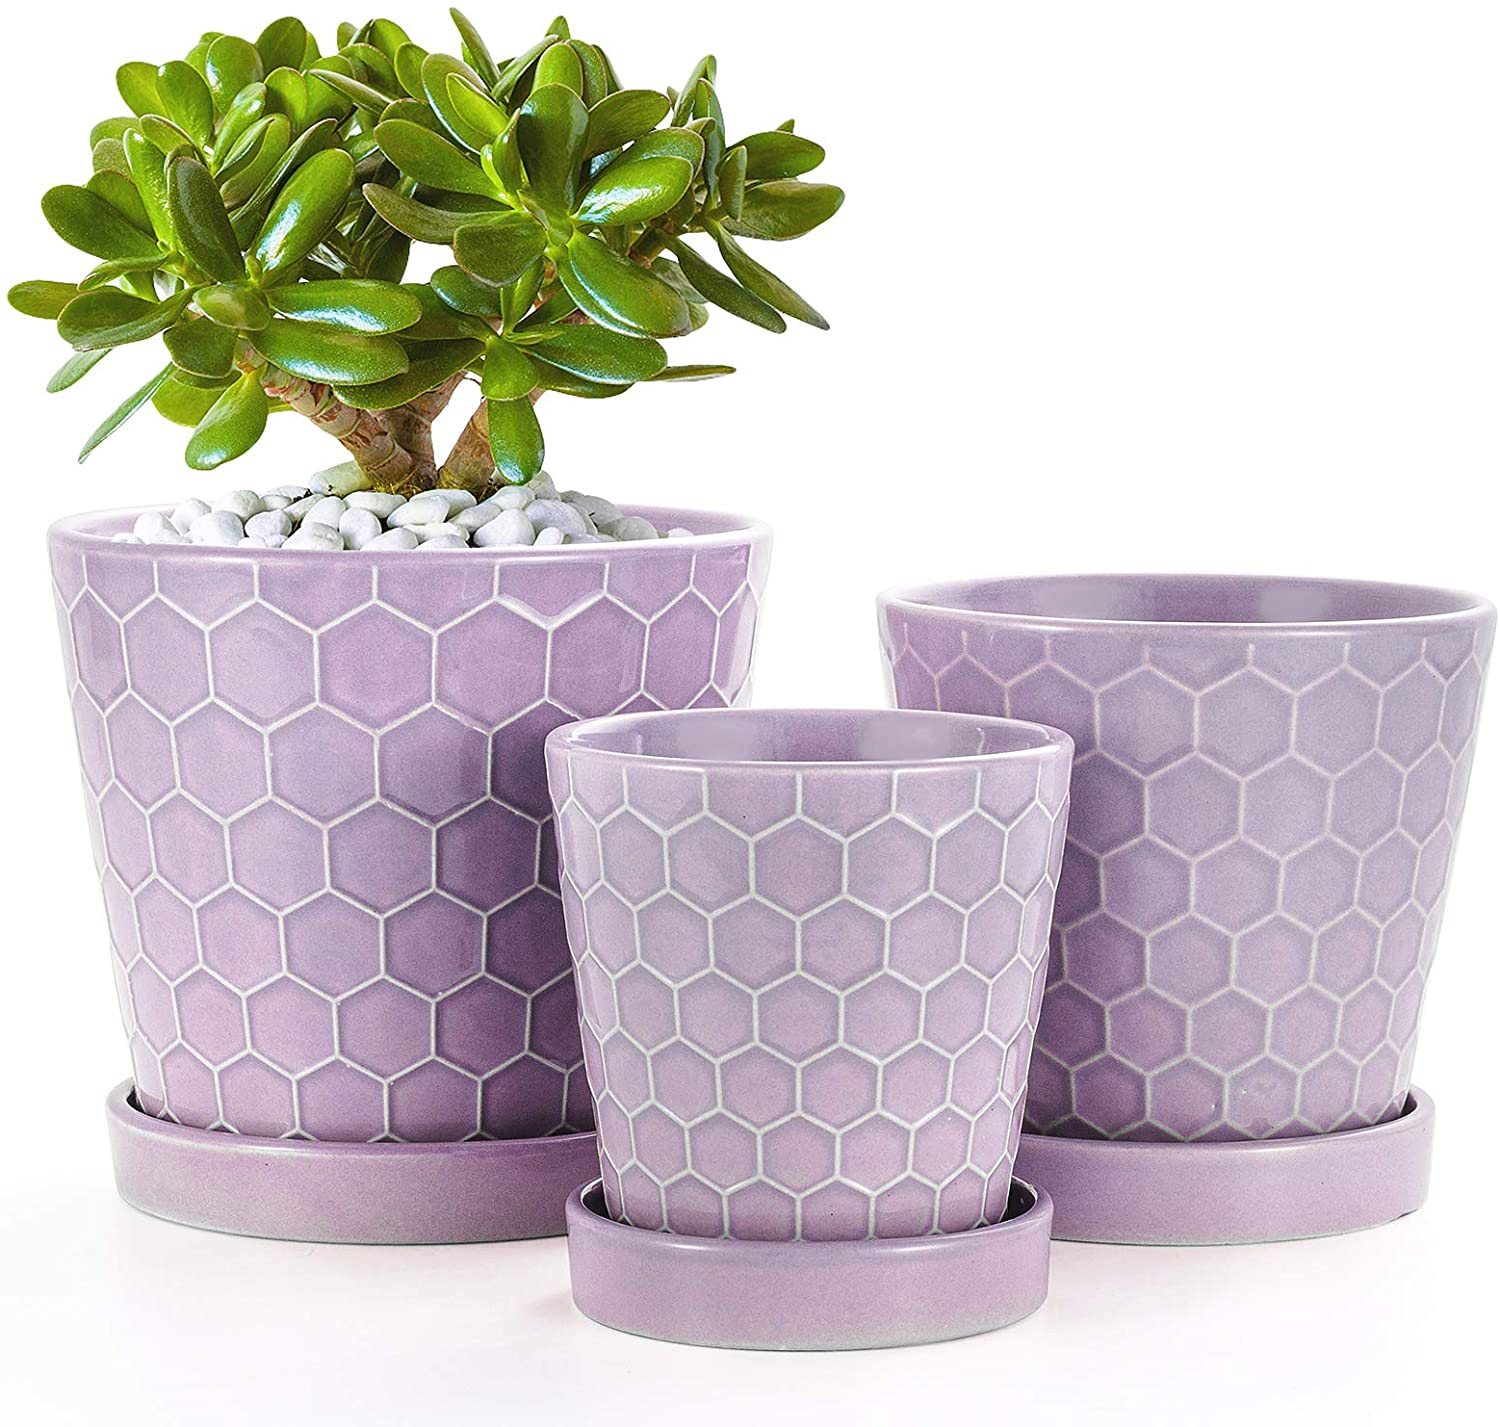 """BUYMAX Succulent Planter –4""""+5""""+6"""" Ceramic Flower Pot with Drainage Hole and Ceramic Tray - Gardening Home Desktop Office Windowsill Decoration Gift Set 3 - Plants NOT Included (Purple)"""